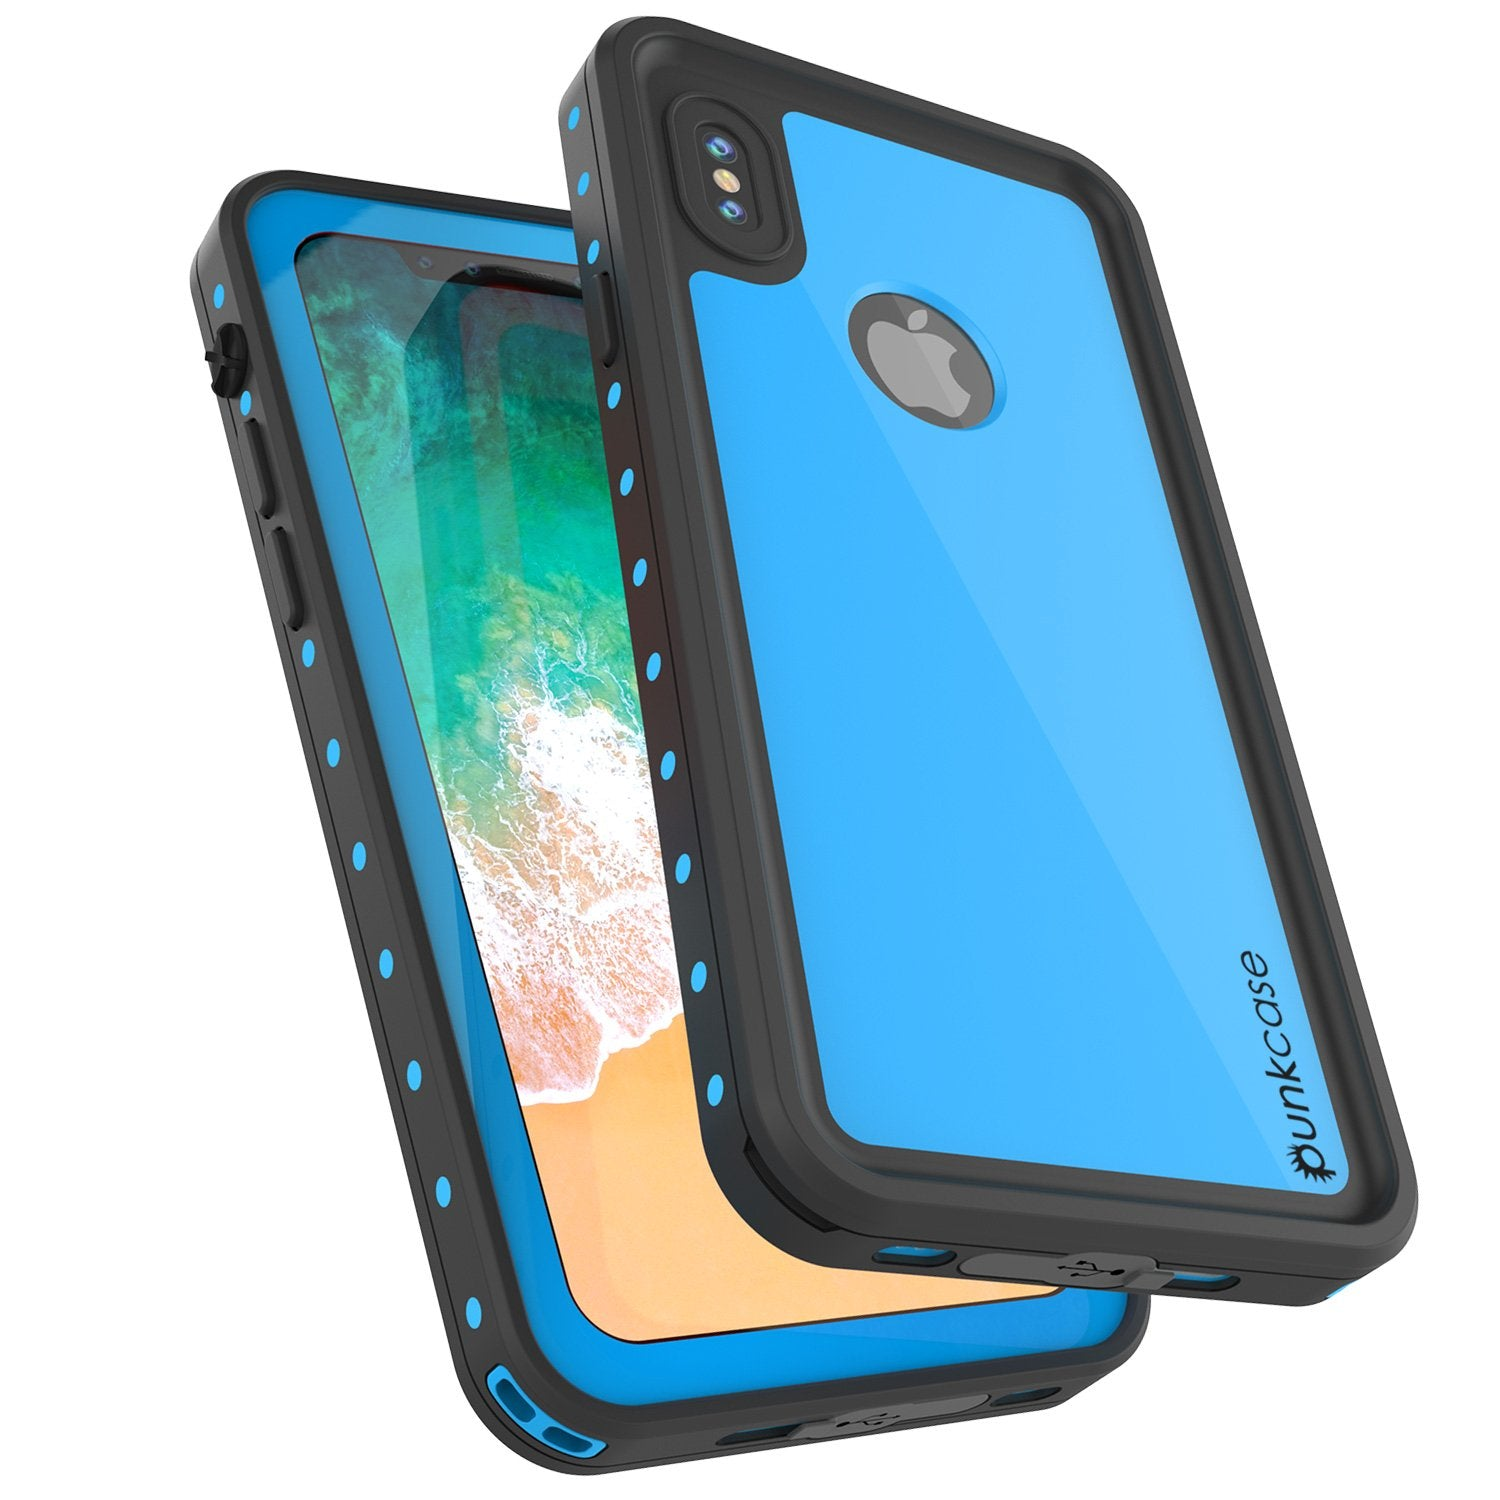 iPhone X Waterproof IP68 Case, Punkcase [Light blue] [StudStar Series] [Slim Fit] [Dirtproof]